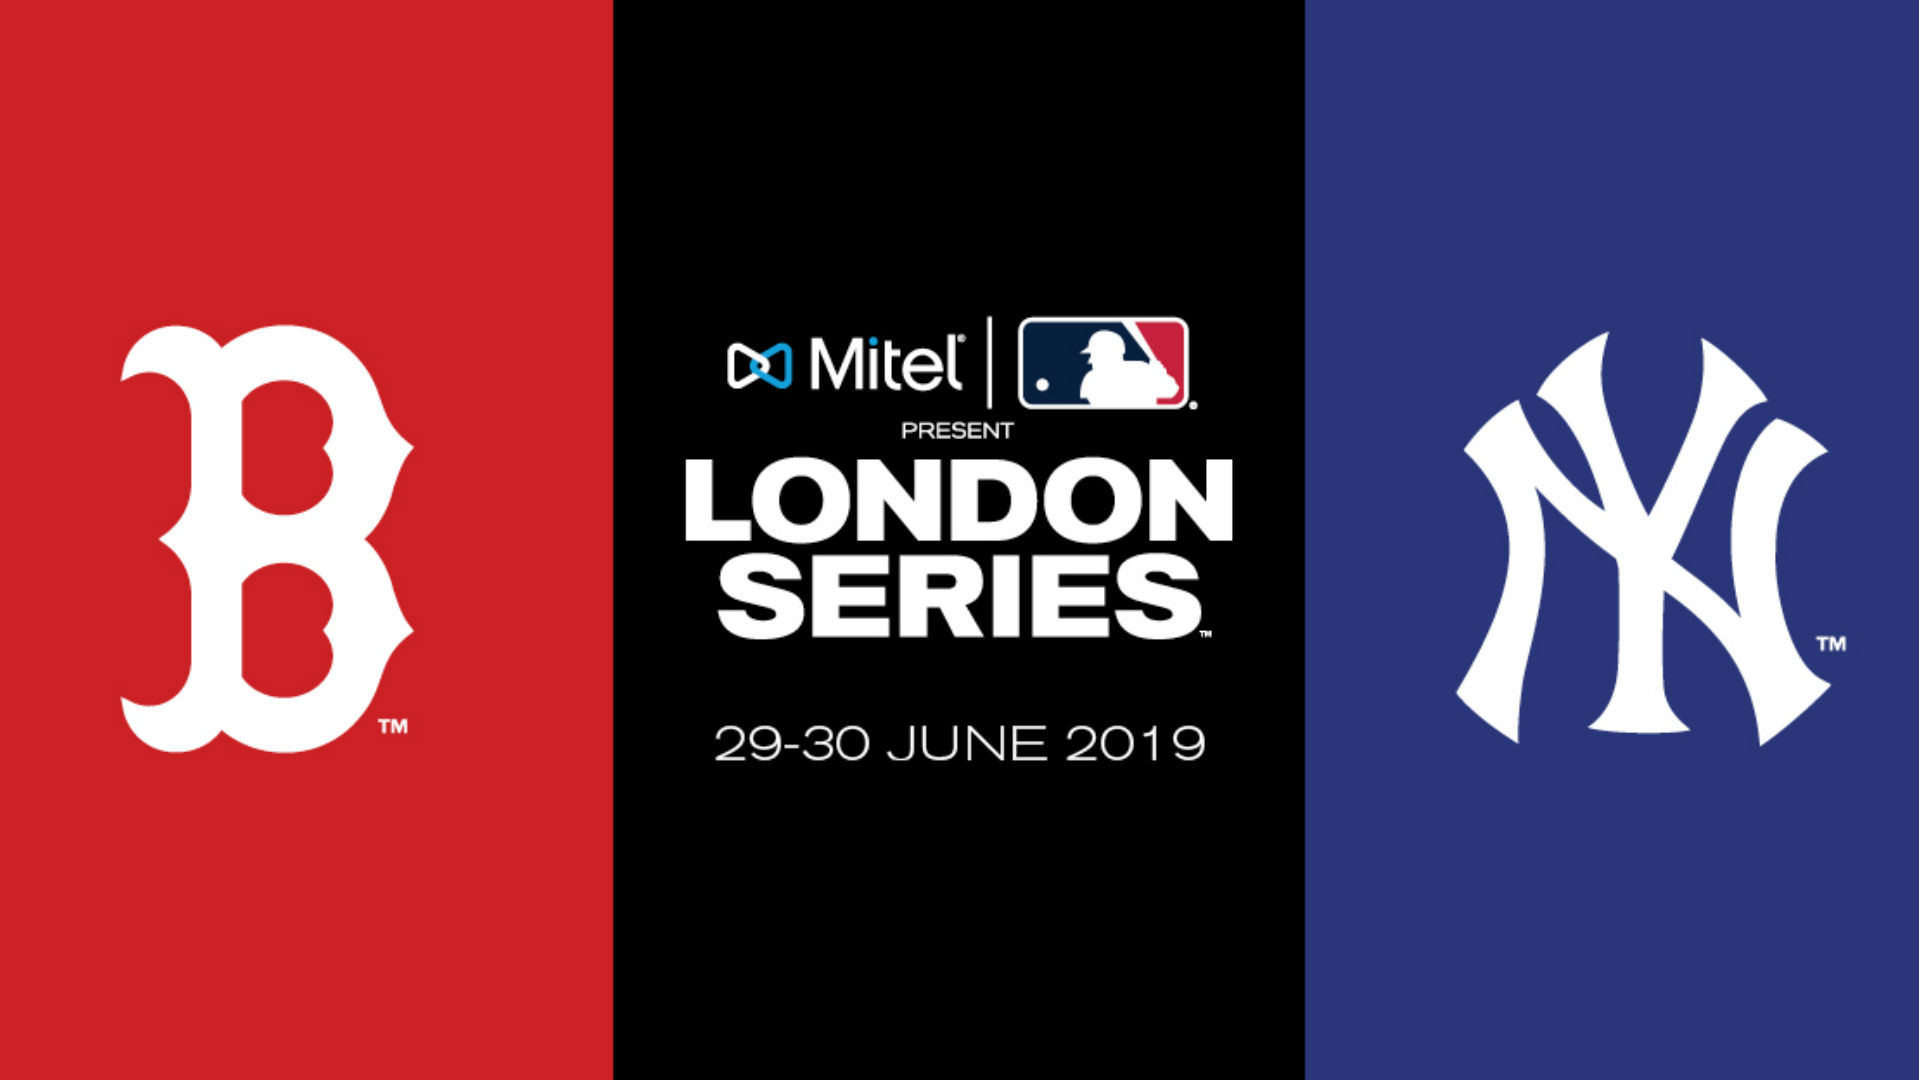 Logo's of the Boston Red Sox and New York Yankees Baseball teams with the London Series Logo